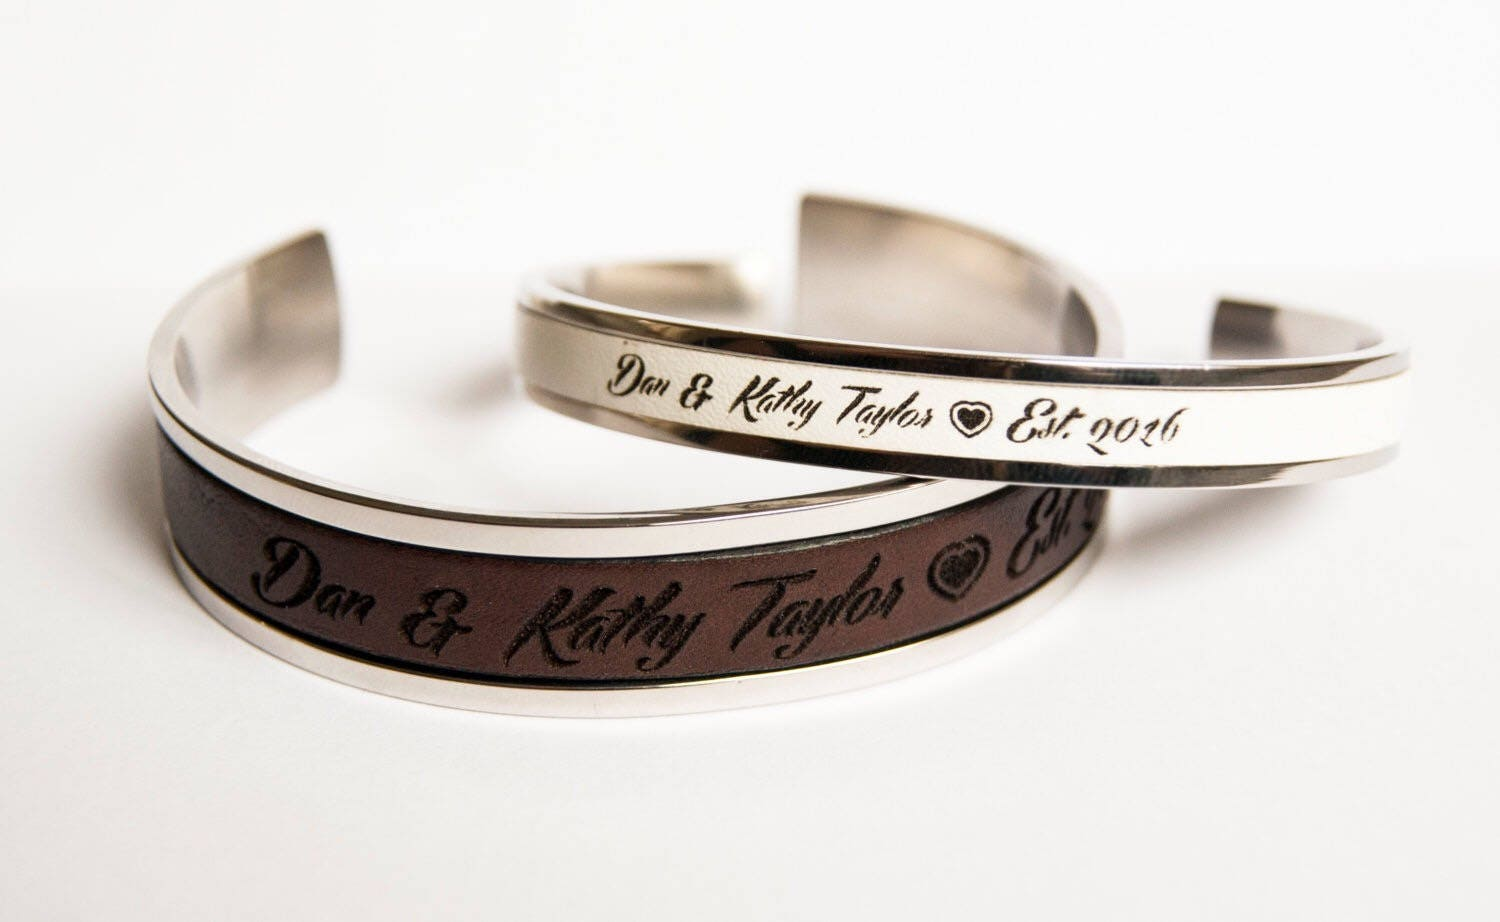 His And Her Gifts For Wedding: Wedding Gifts For Couple His And Her Bracelet Couples Bracelet